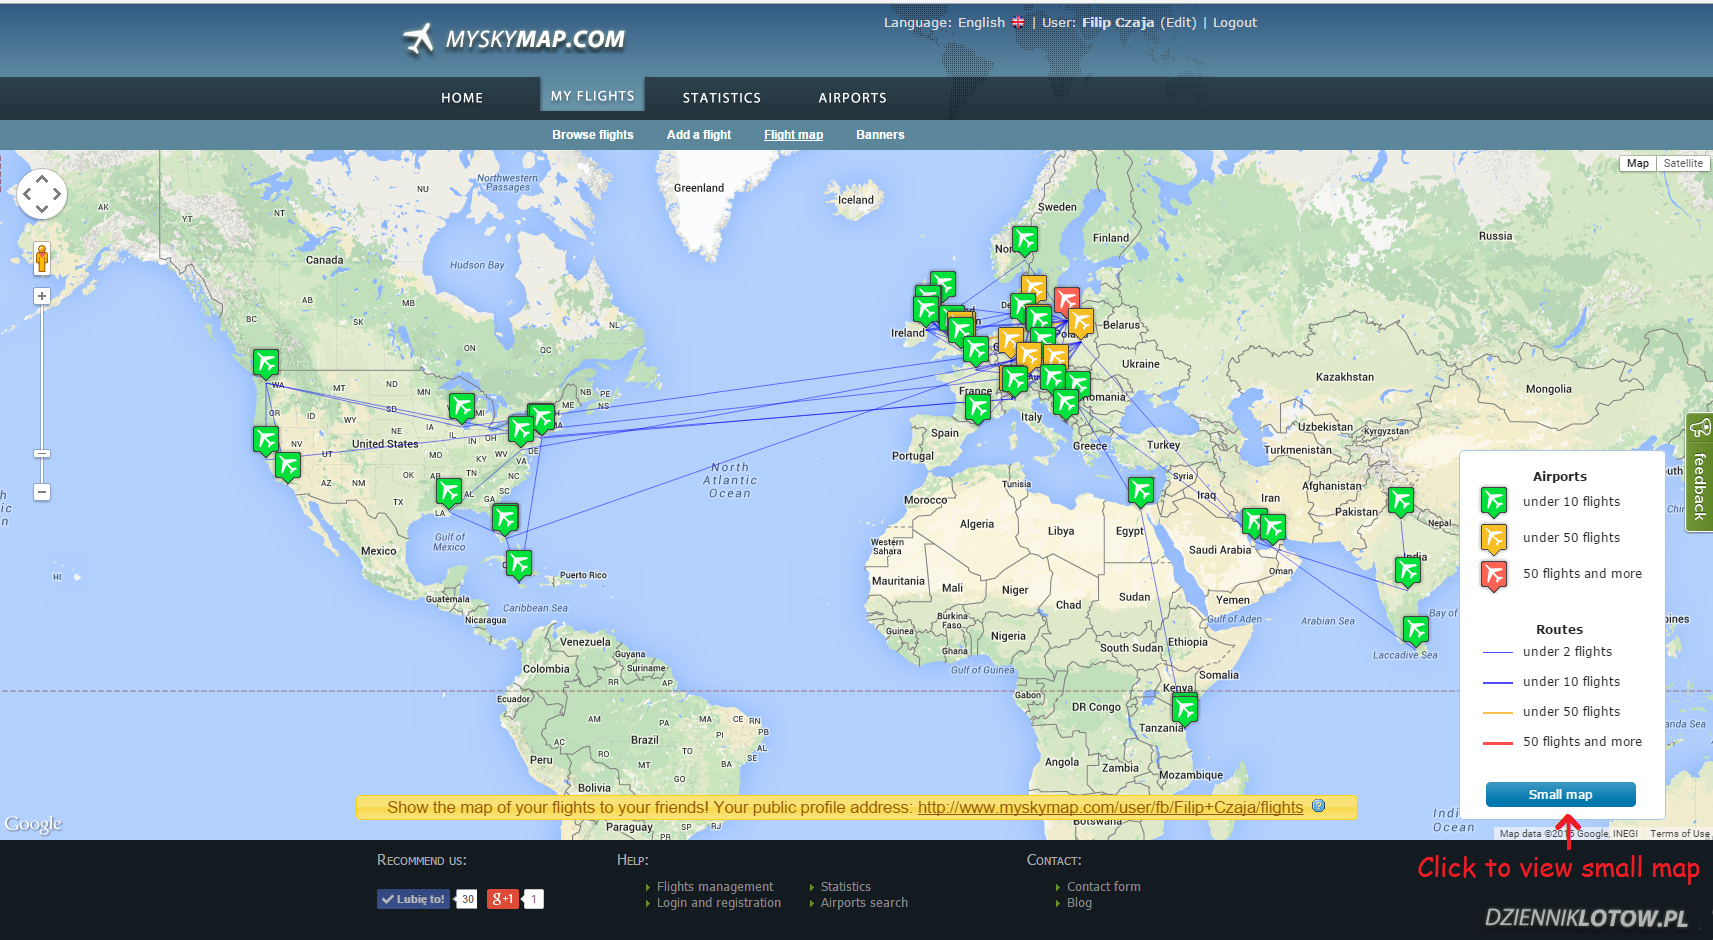 Large, nearly full-screen map of user flights.